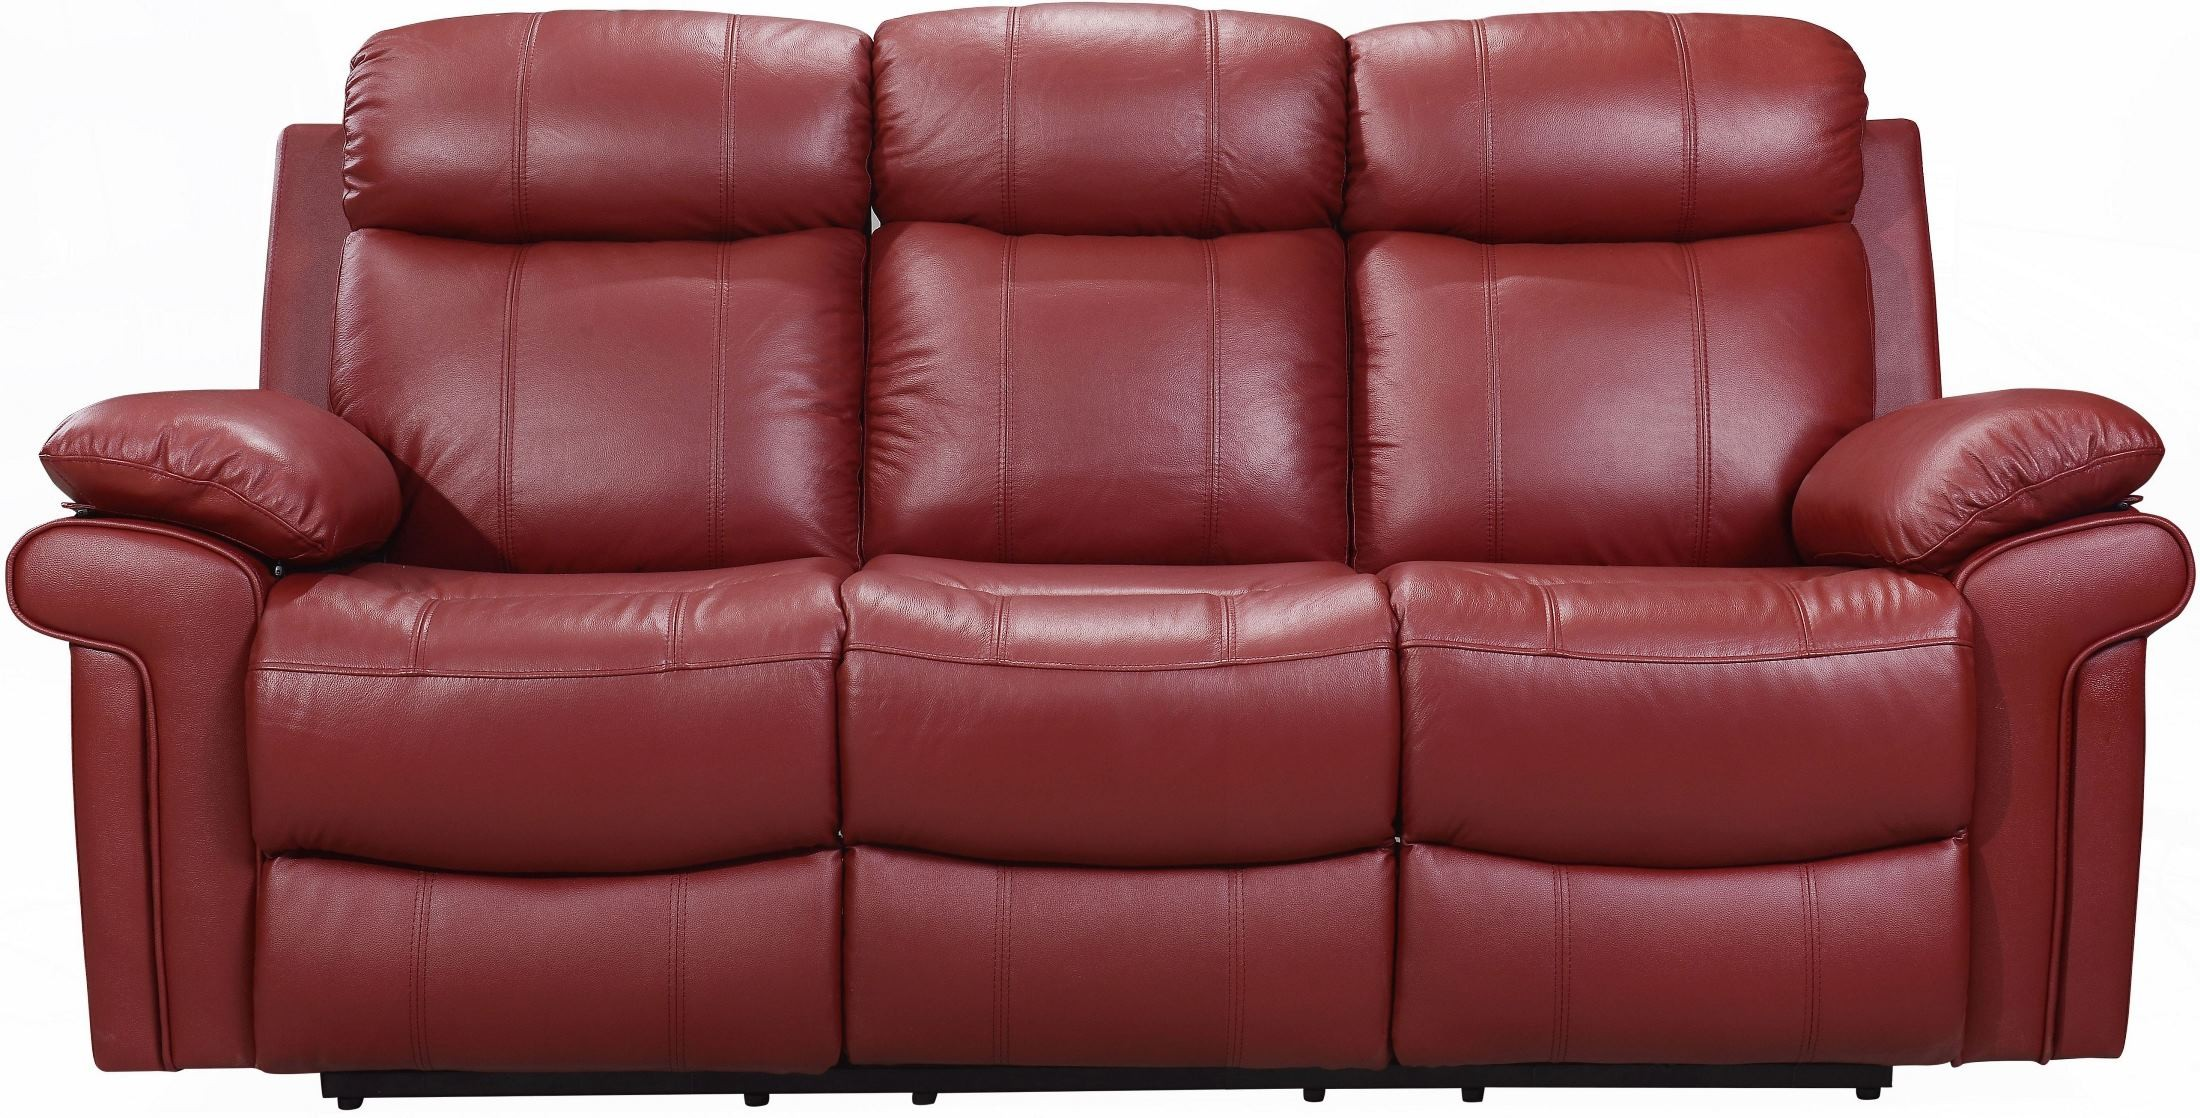 Shae joplin red leather power reclining sofa from luxe leather coleman furniture Red sofas and loveseats